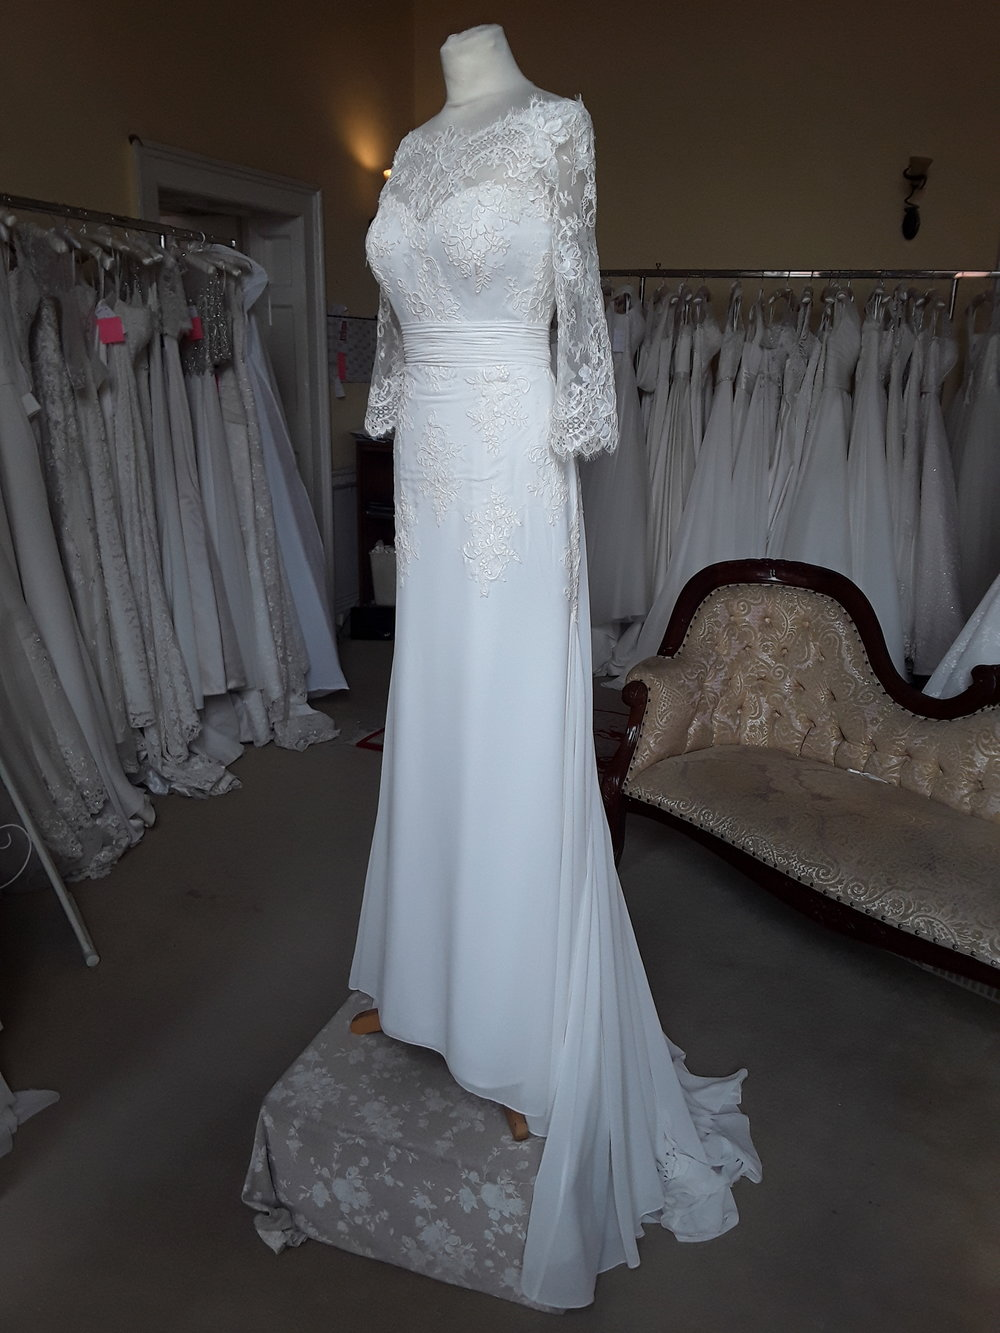 WHITE ROSE CHIFFON/LACE FIT AND FLARE DRESS  SIZE: 12  COLOUR: IVORY  WAS €1,395 NOW €950  Ref: E111